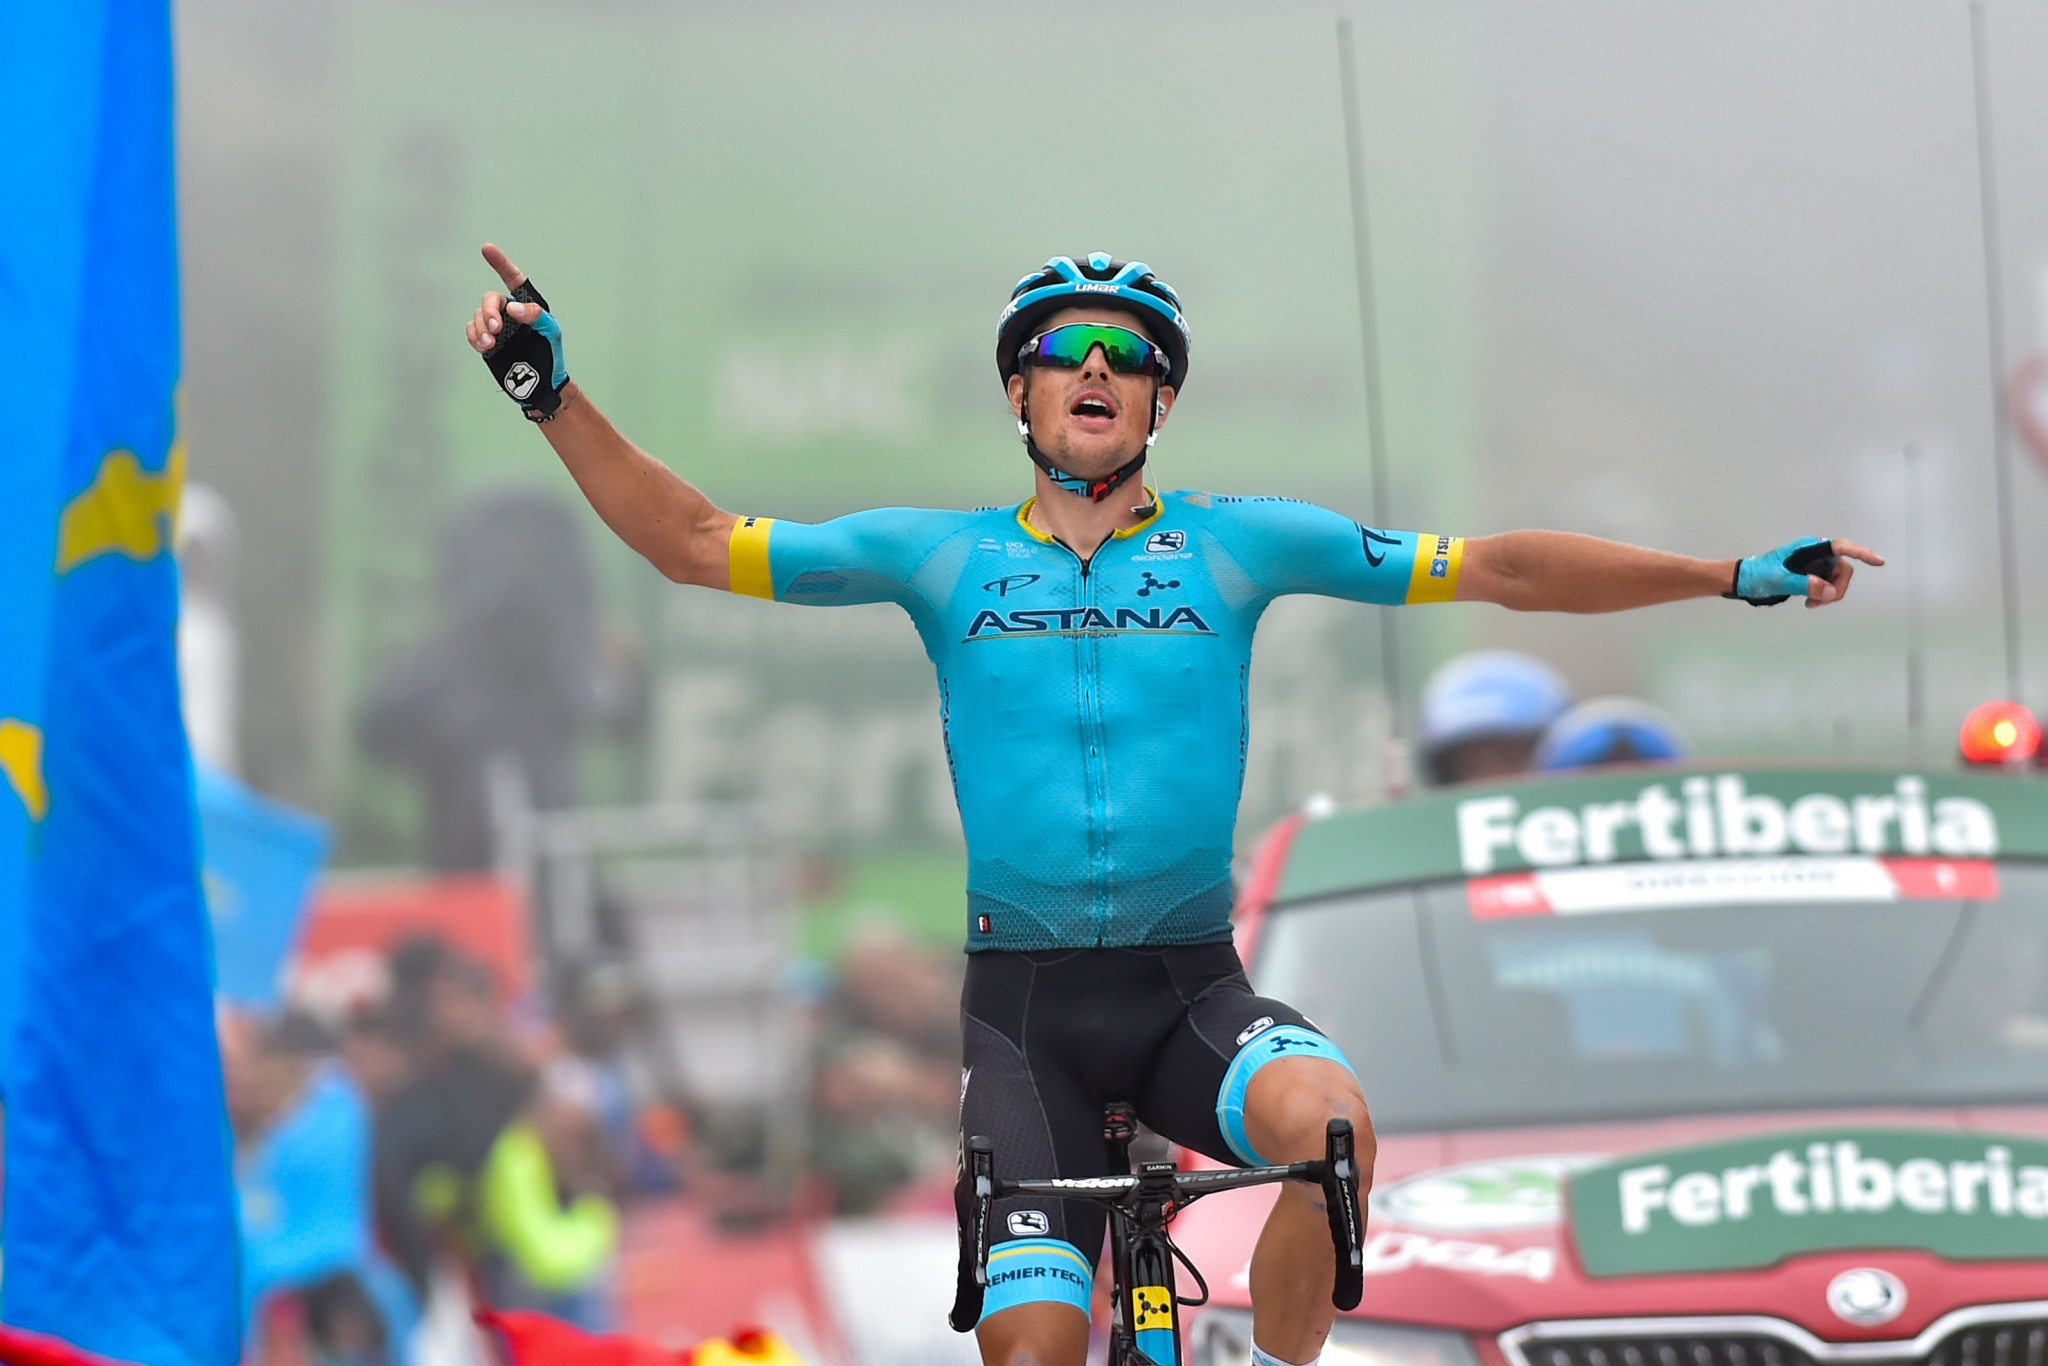 Fuglsang claims maiden Grand Tour victory as Roglič extends lead at Vuelta a España